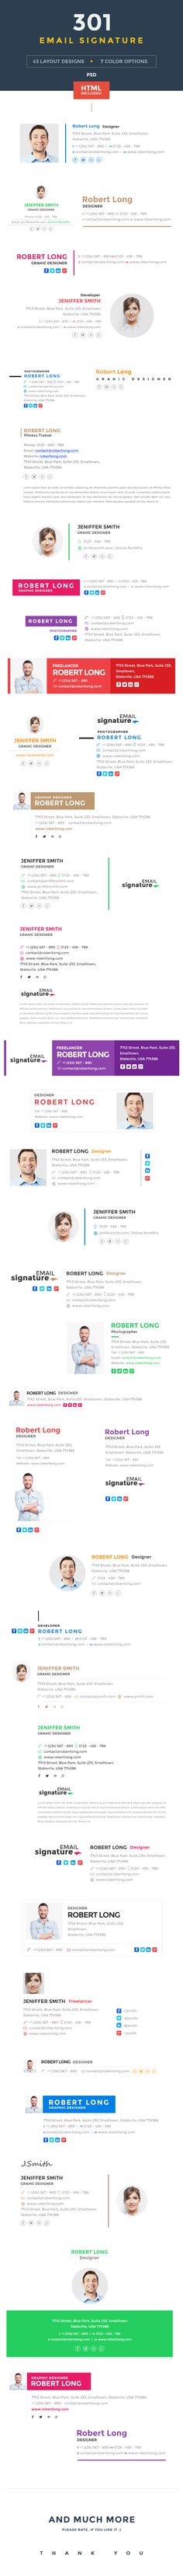 Set of 301 Creative, Modern & Professional Email Signatures for your Business & Personal use. It allow you to customize your email signature with your logo, social profile, you can easily change its text & color from html as well as photoshop.Here we pr…